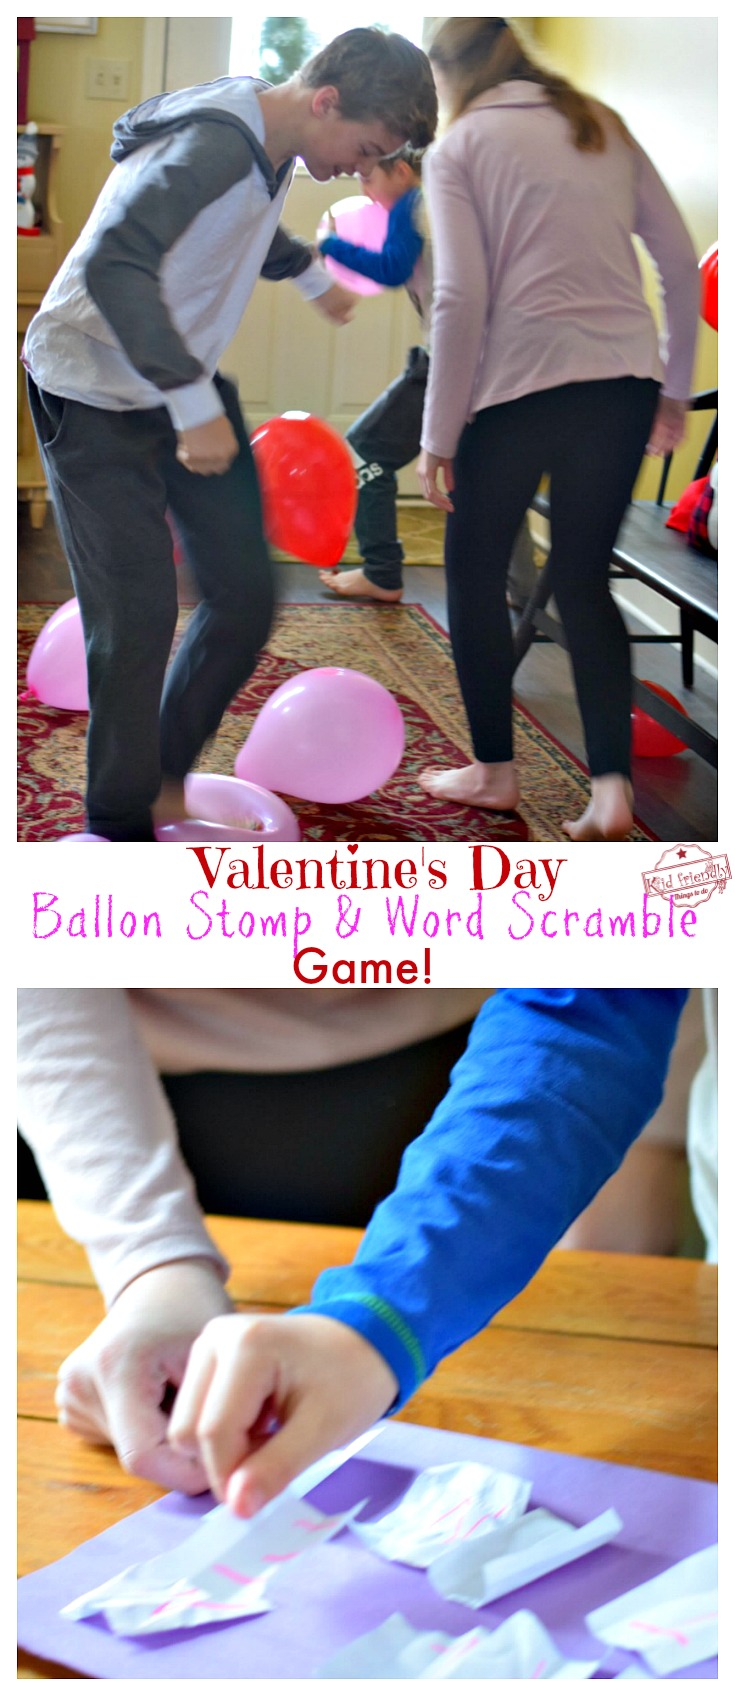 Valentine Balloon Stomp Word Scramble Party Game For Kids and Teens - So easy to set up and kids love it! www.kidfriendlythingstodo.com